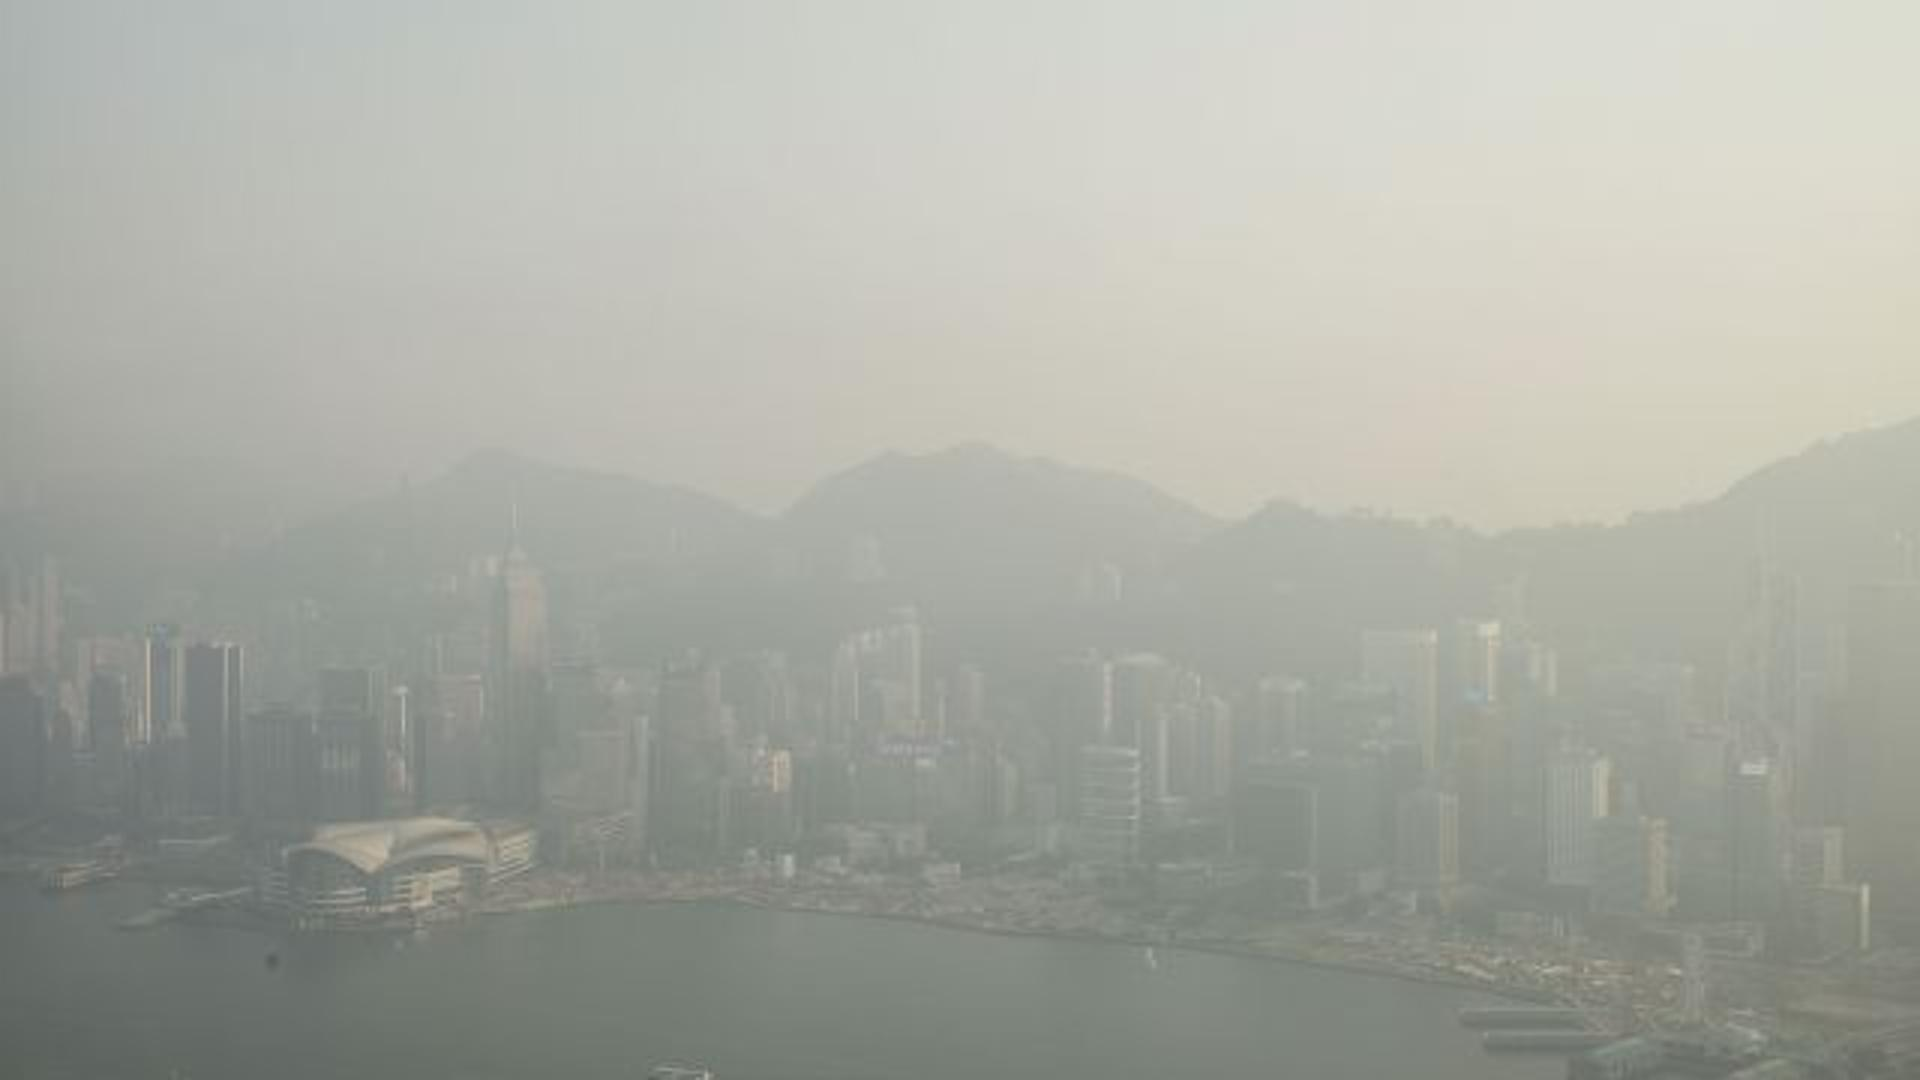 Air Pollution Links People Thousands Of Miles Apart In Deadly Ways | HuffPost Life